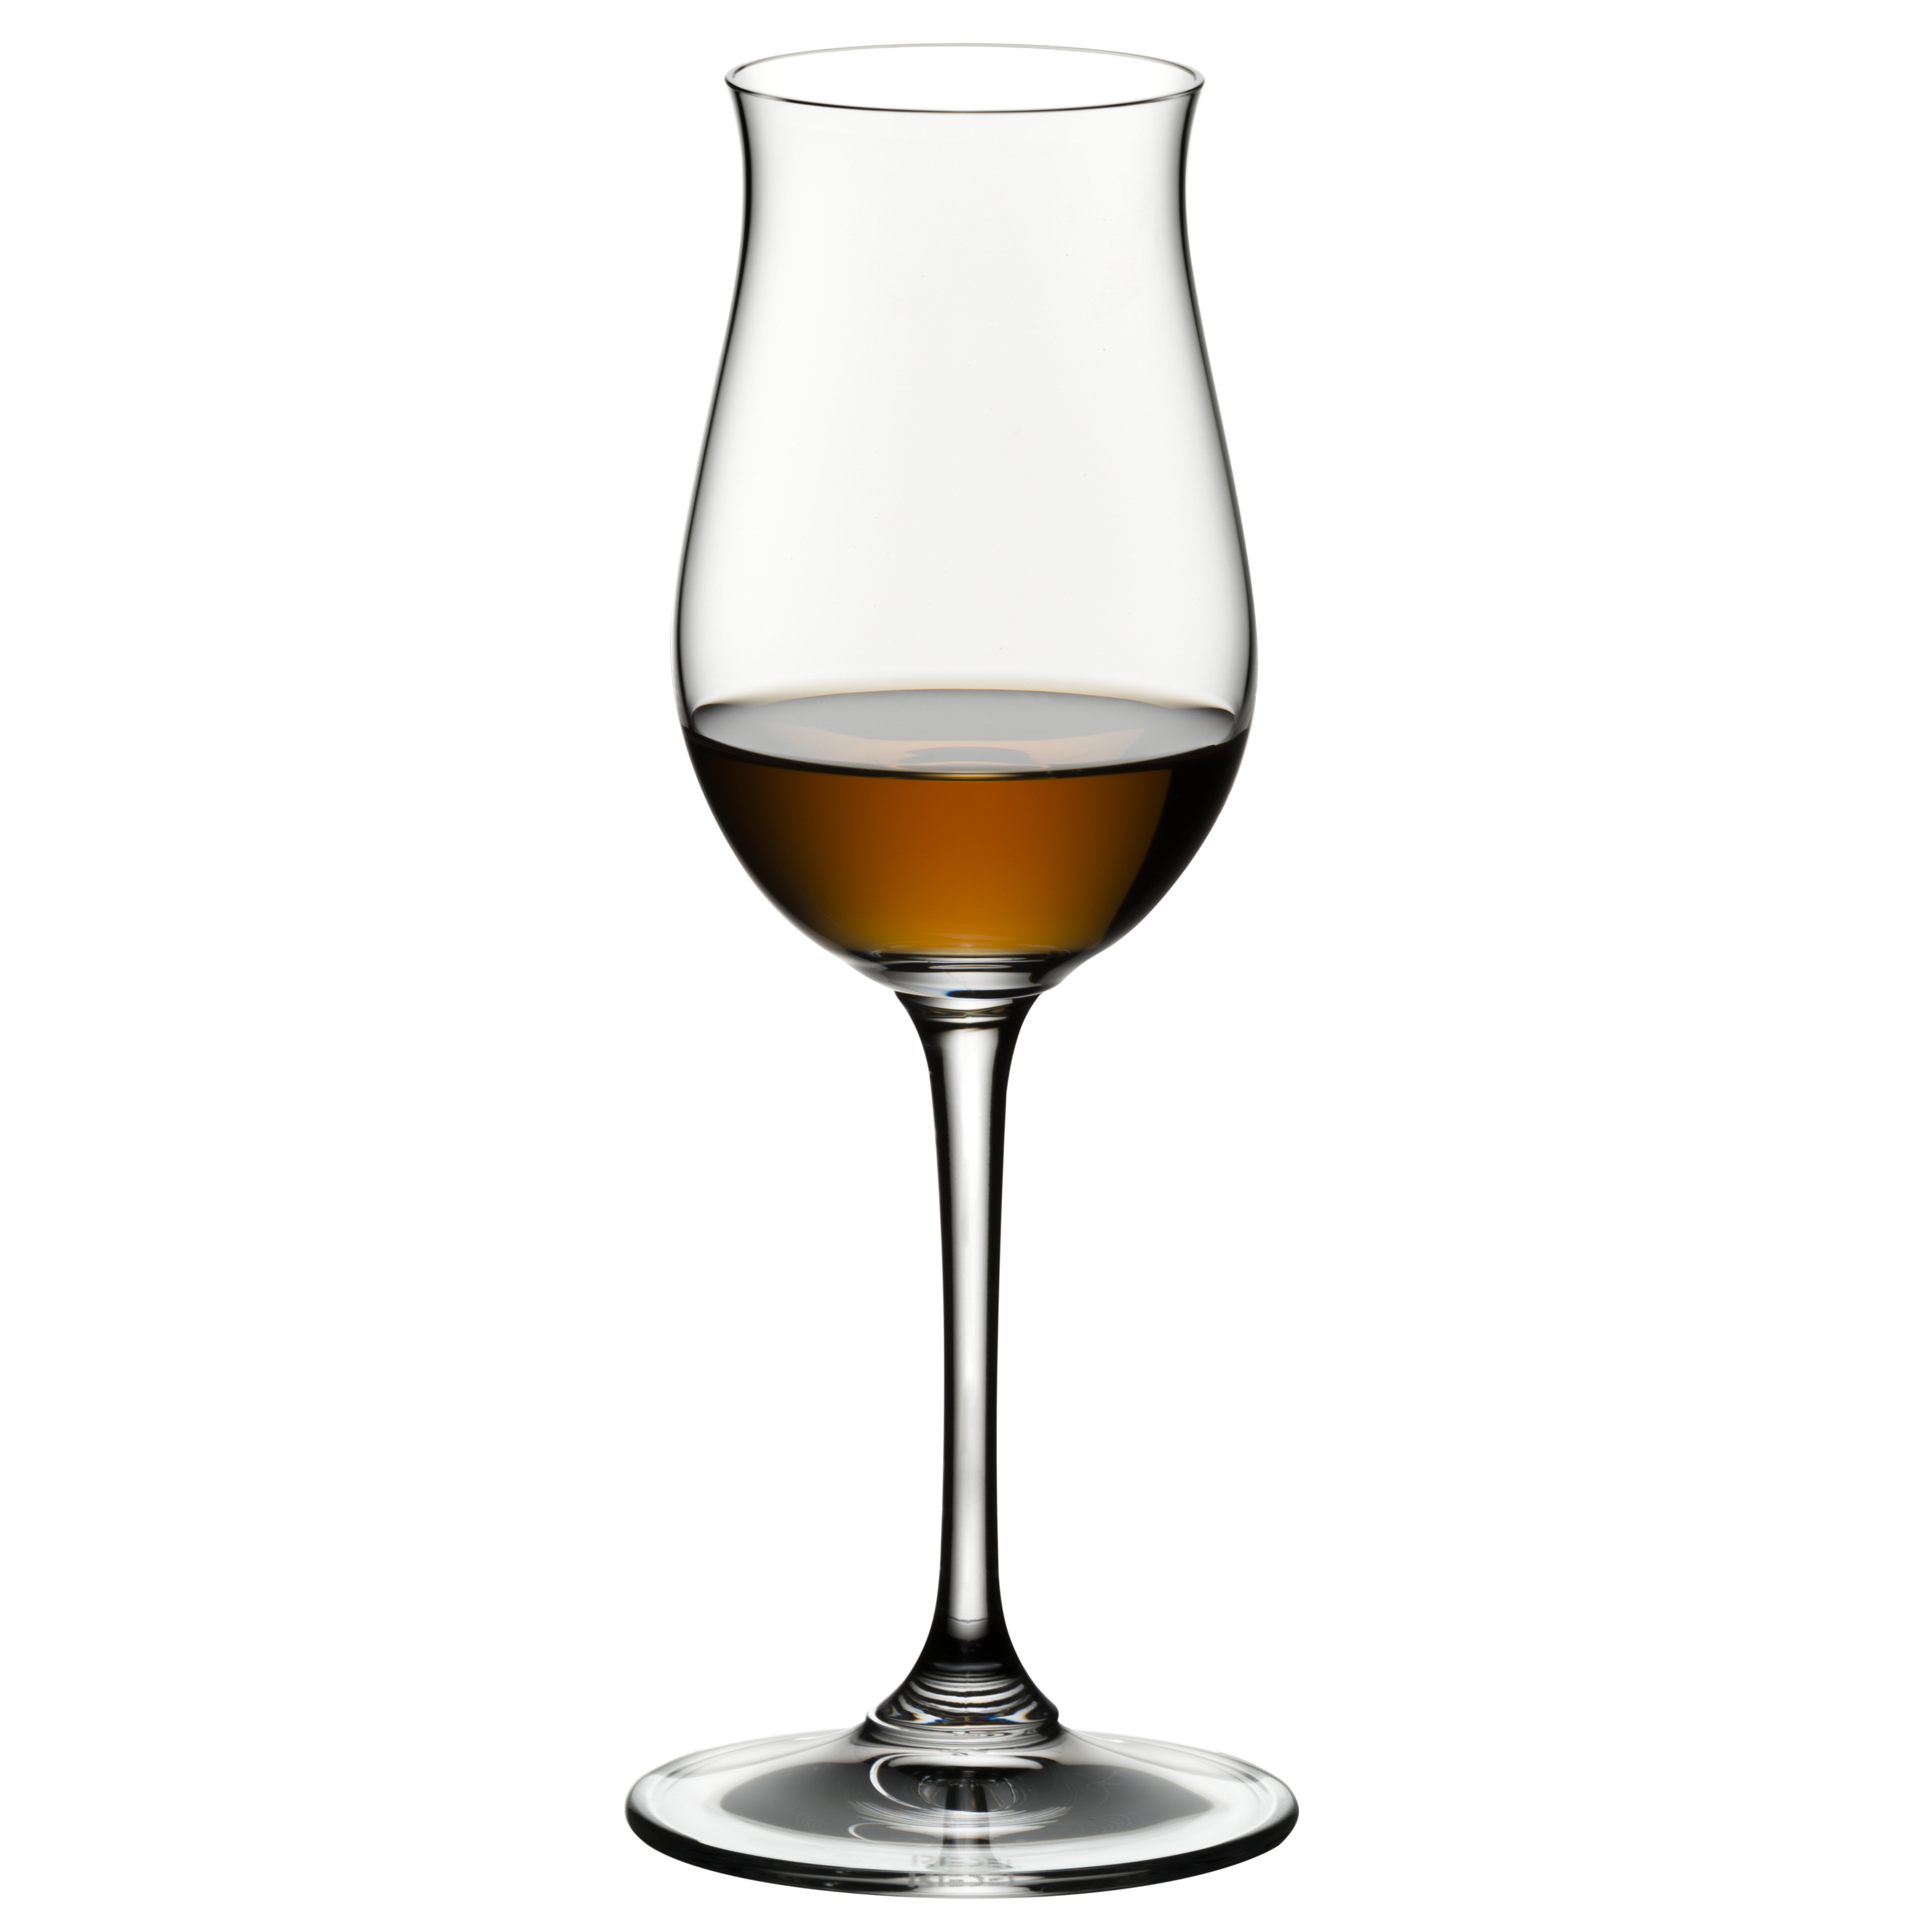 Riedel Vinum Leaded Crystal Cognac/Hennessy Glass, Set of 2